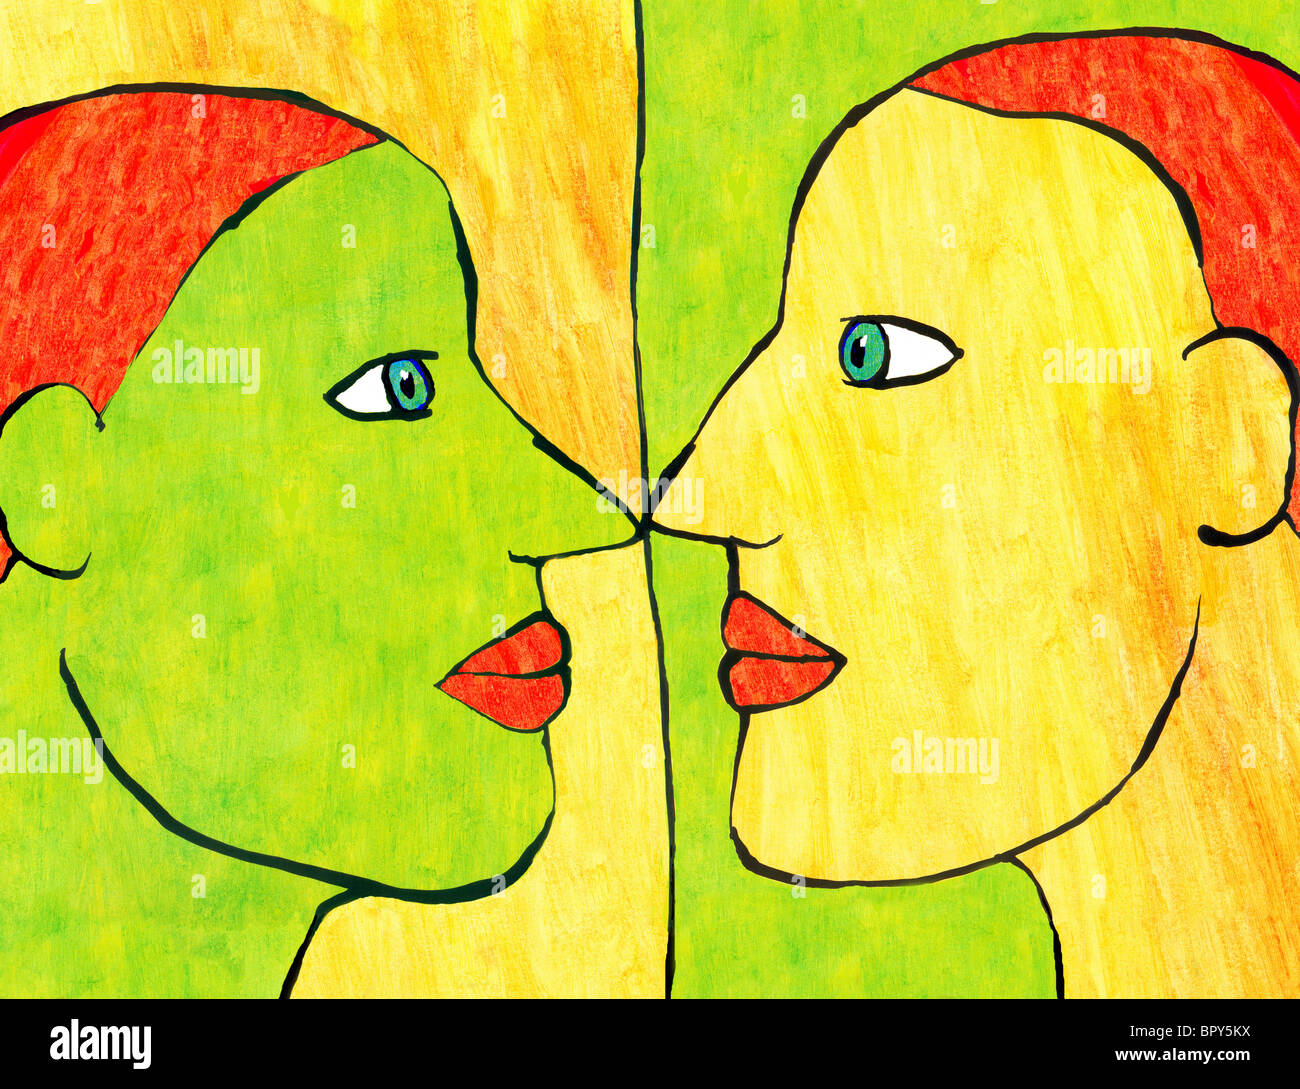 Cartoon drawing of a woman and her reflection - Stock Image